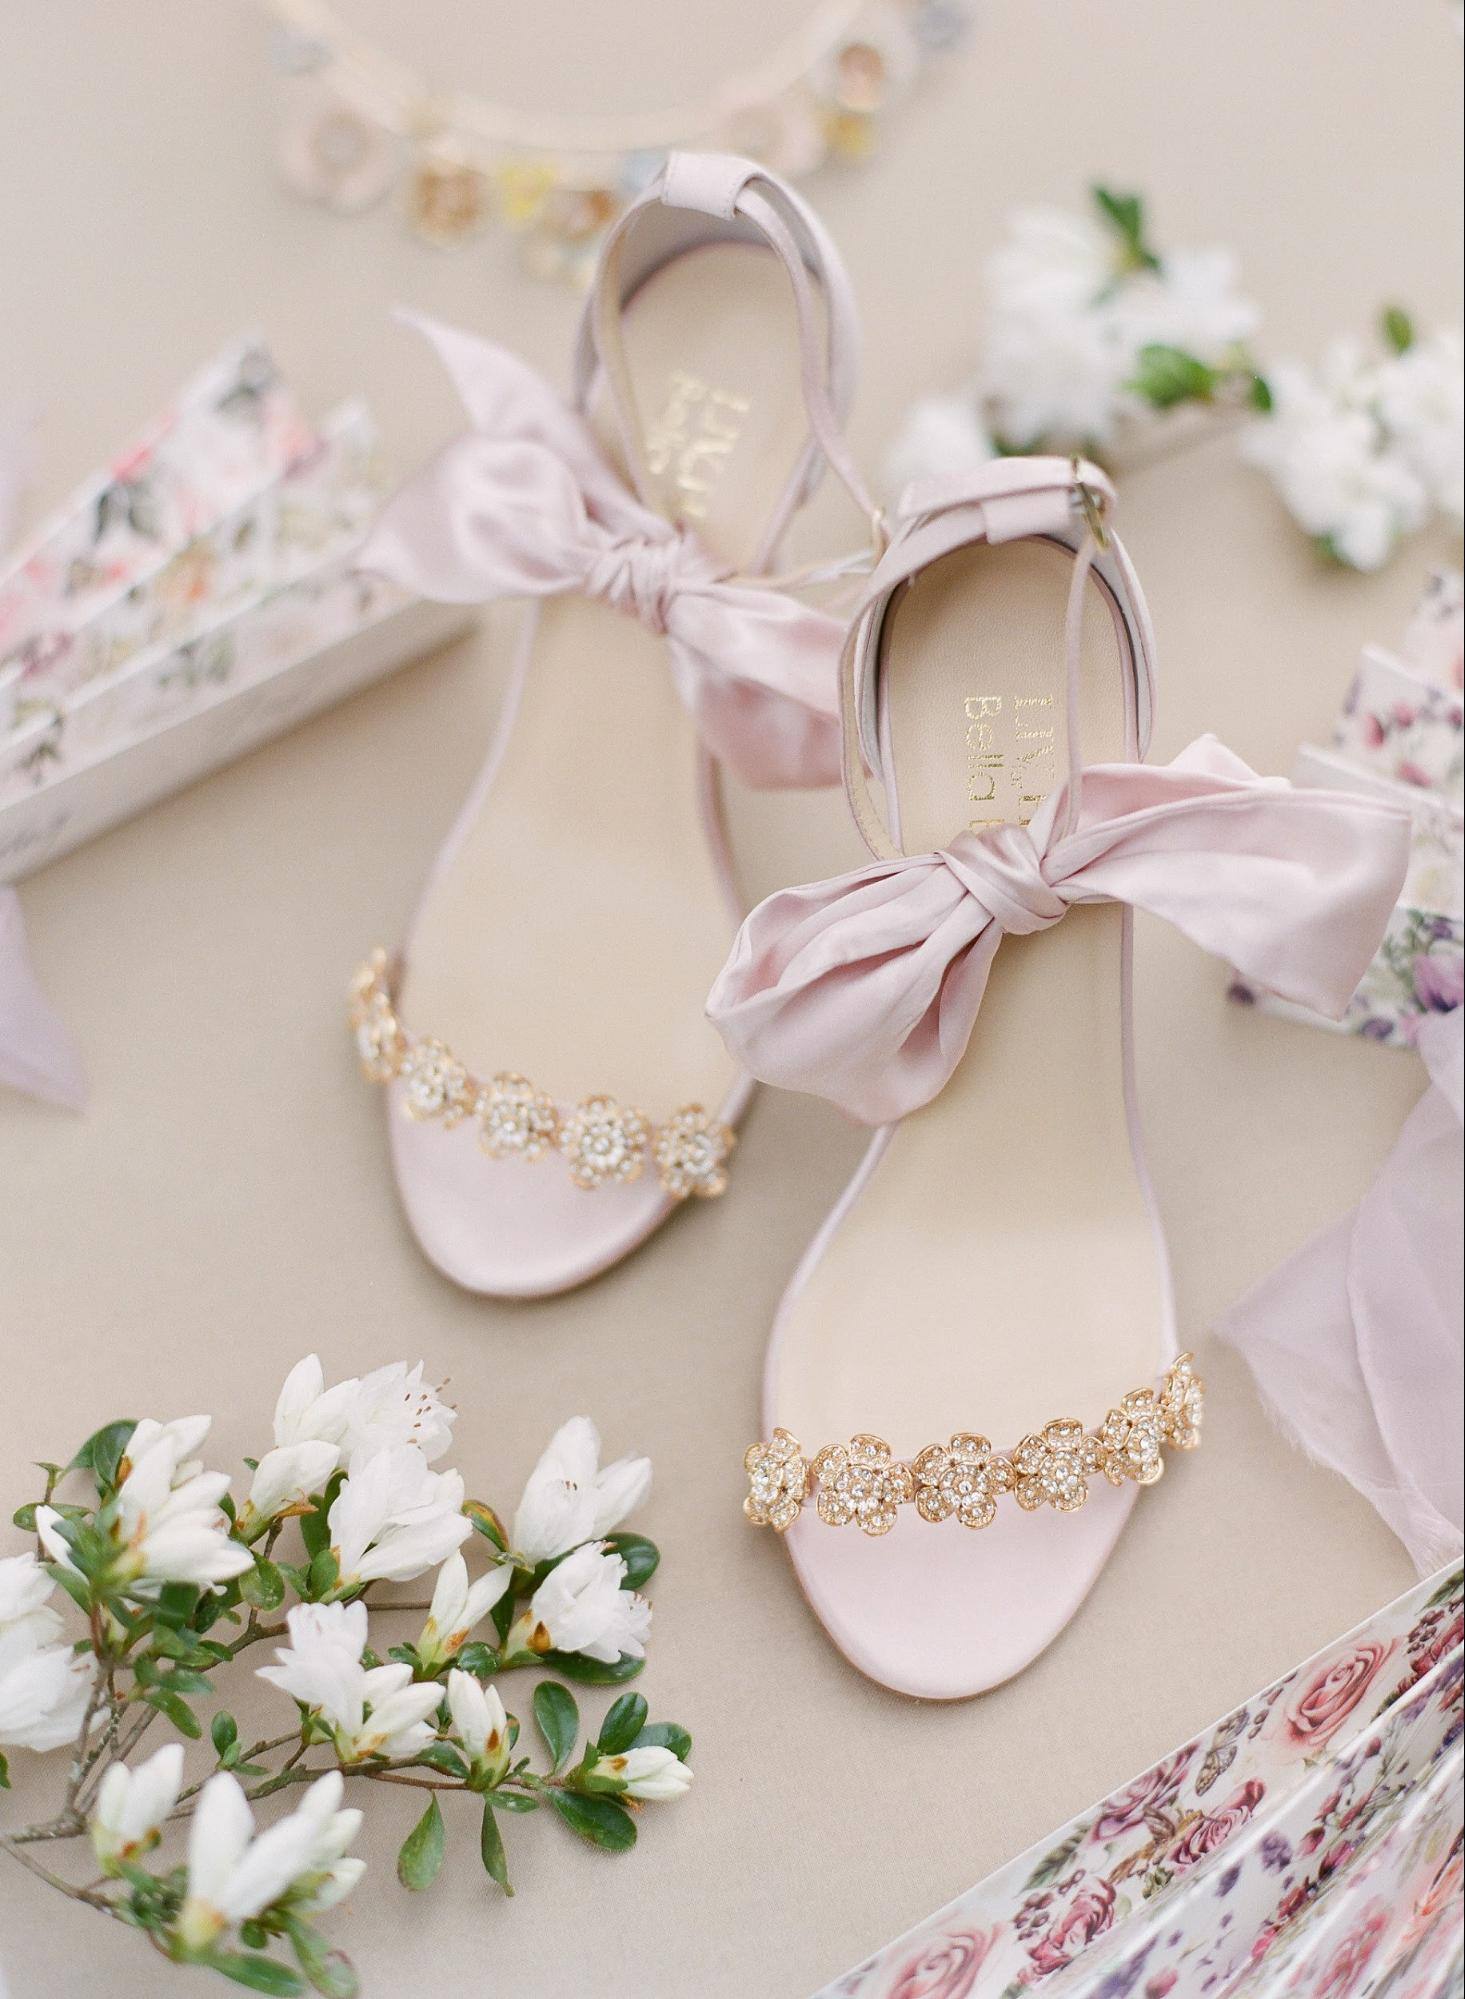 The Mariee wedding shoe.